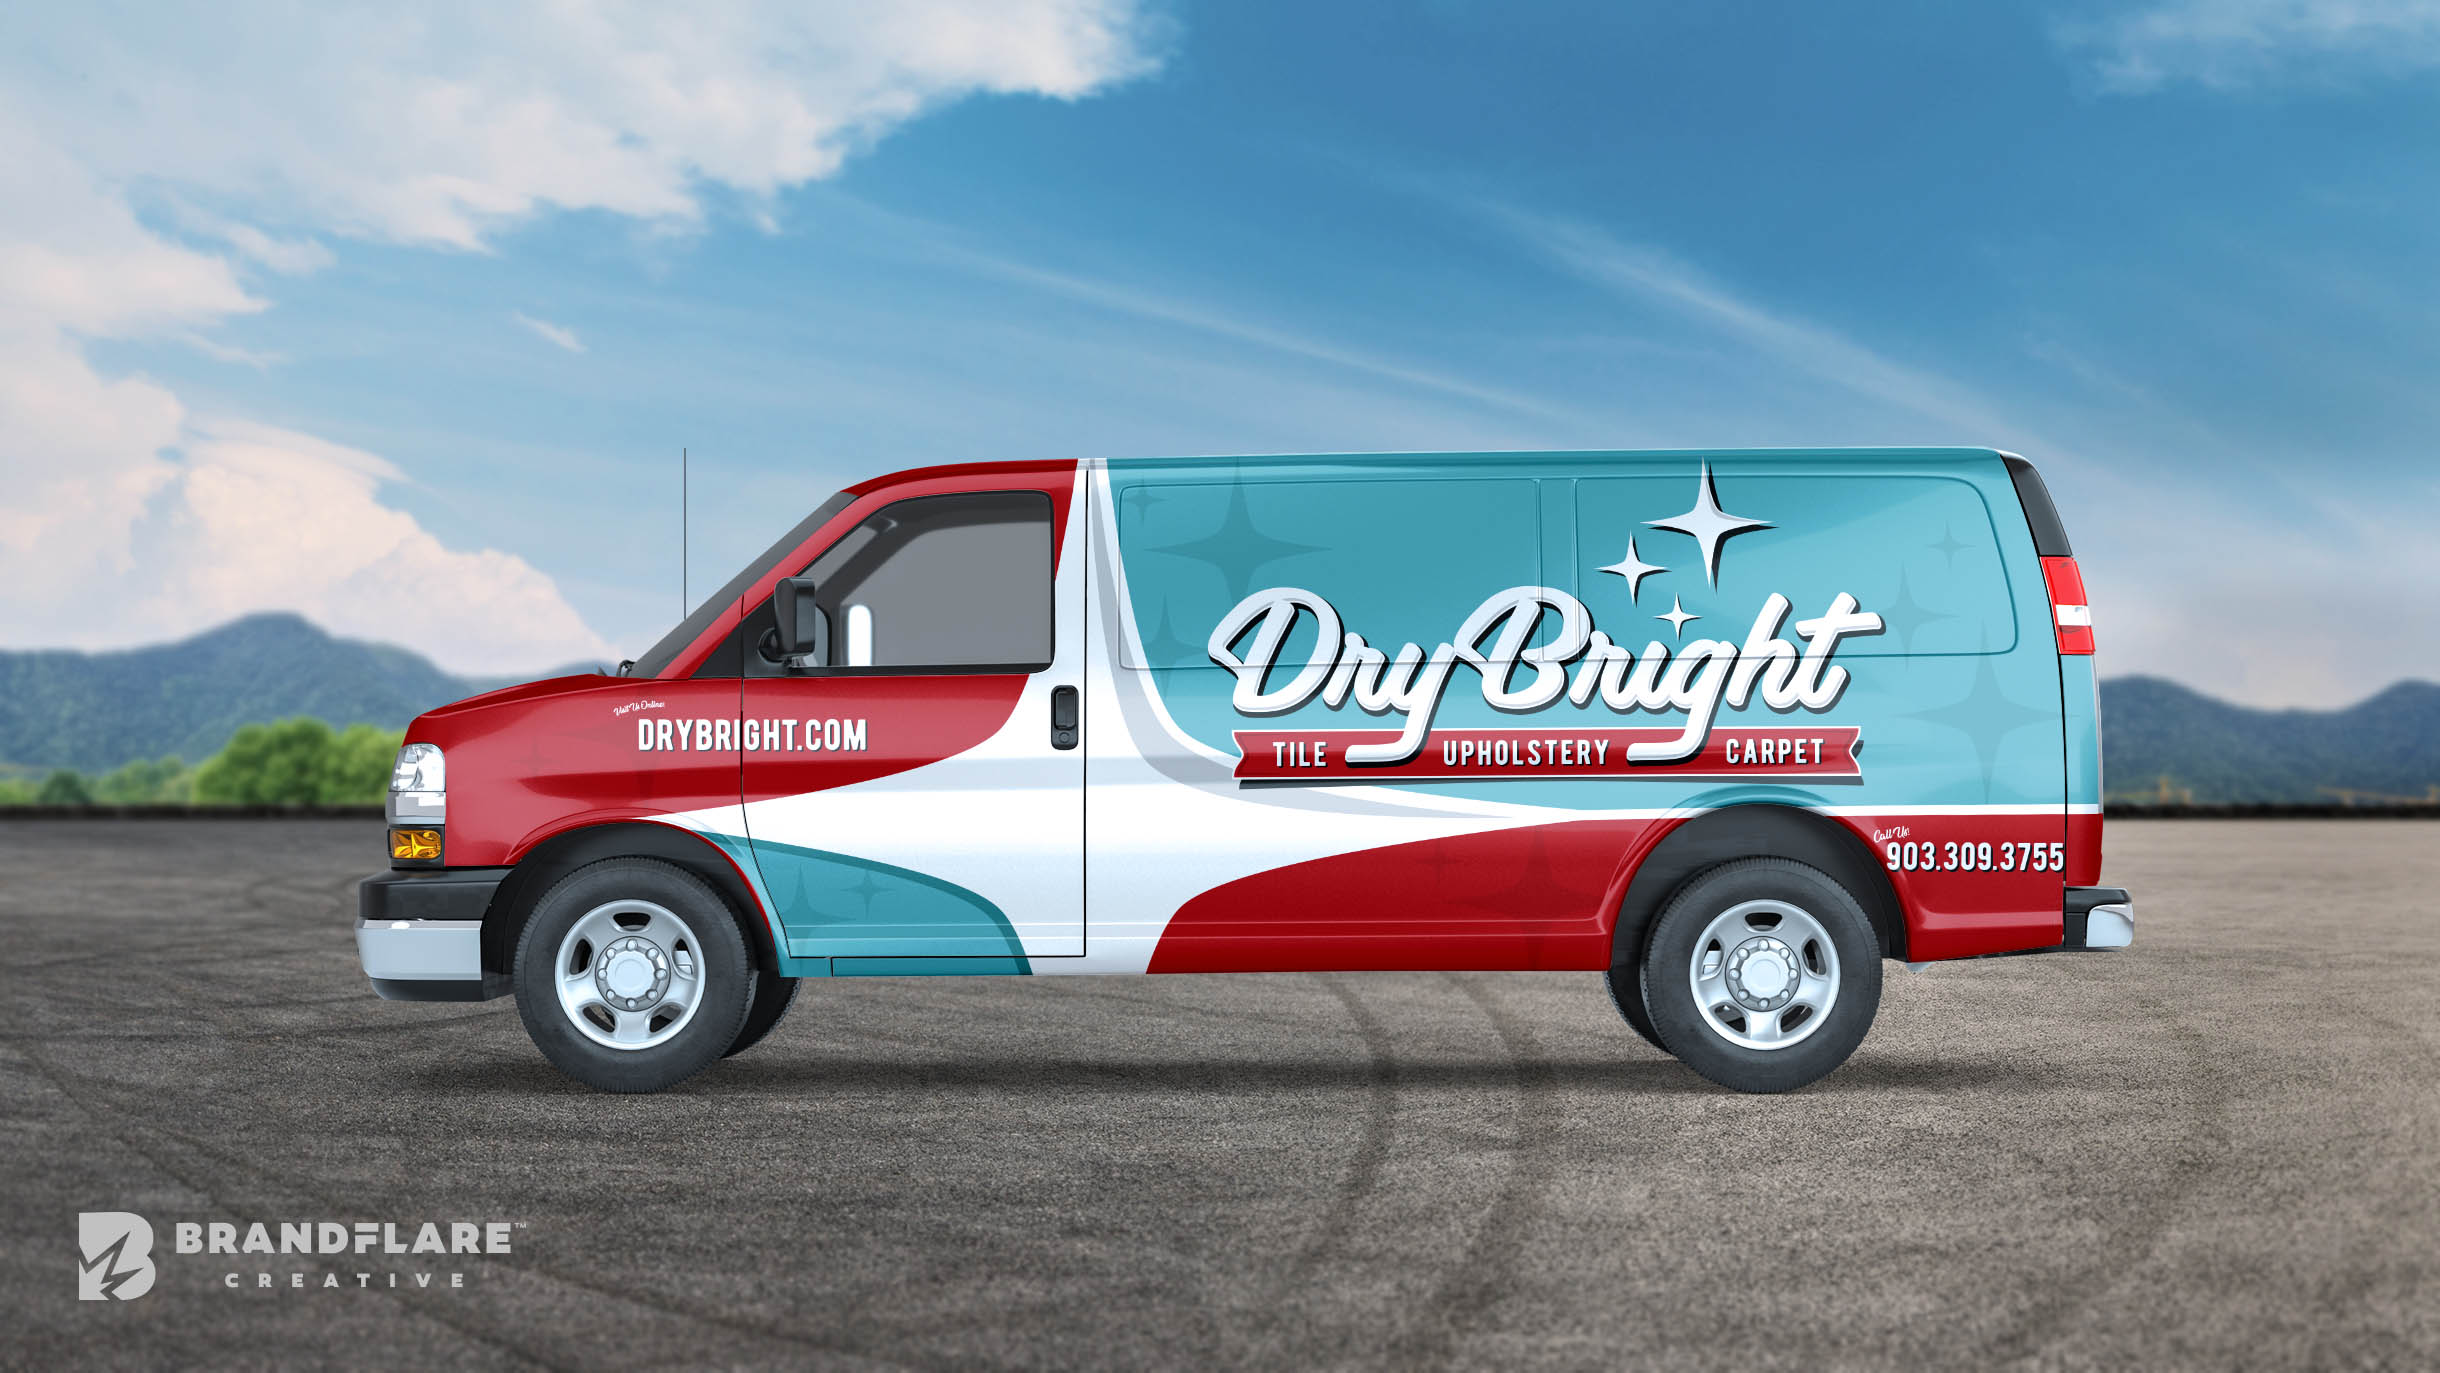 DryBright Van Wrap Design - BrandFlare Creative